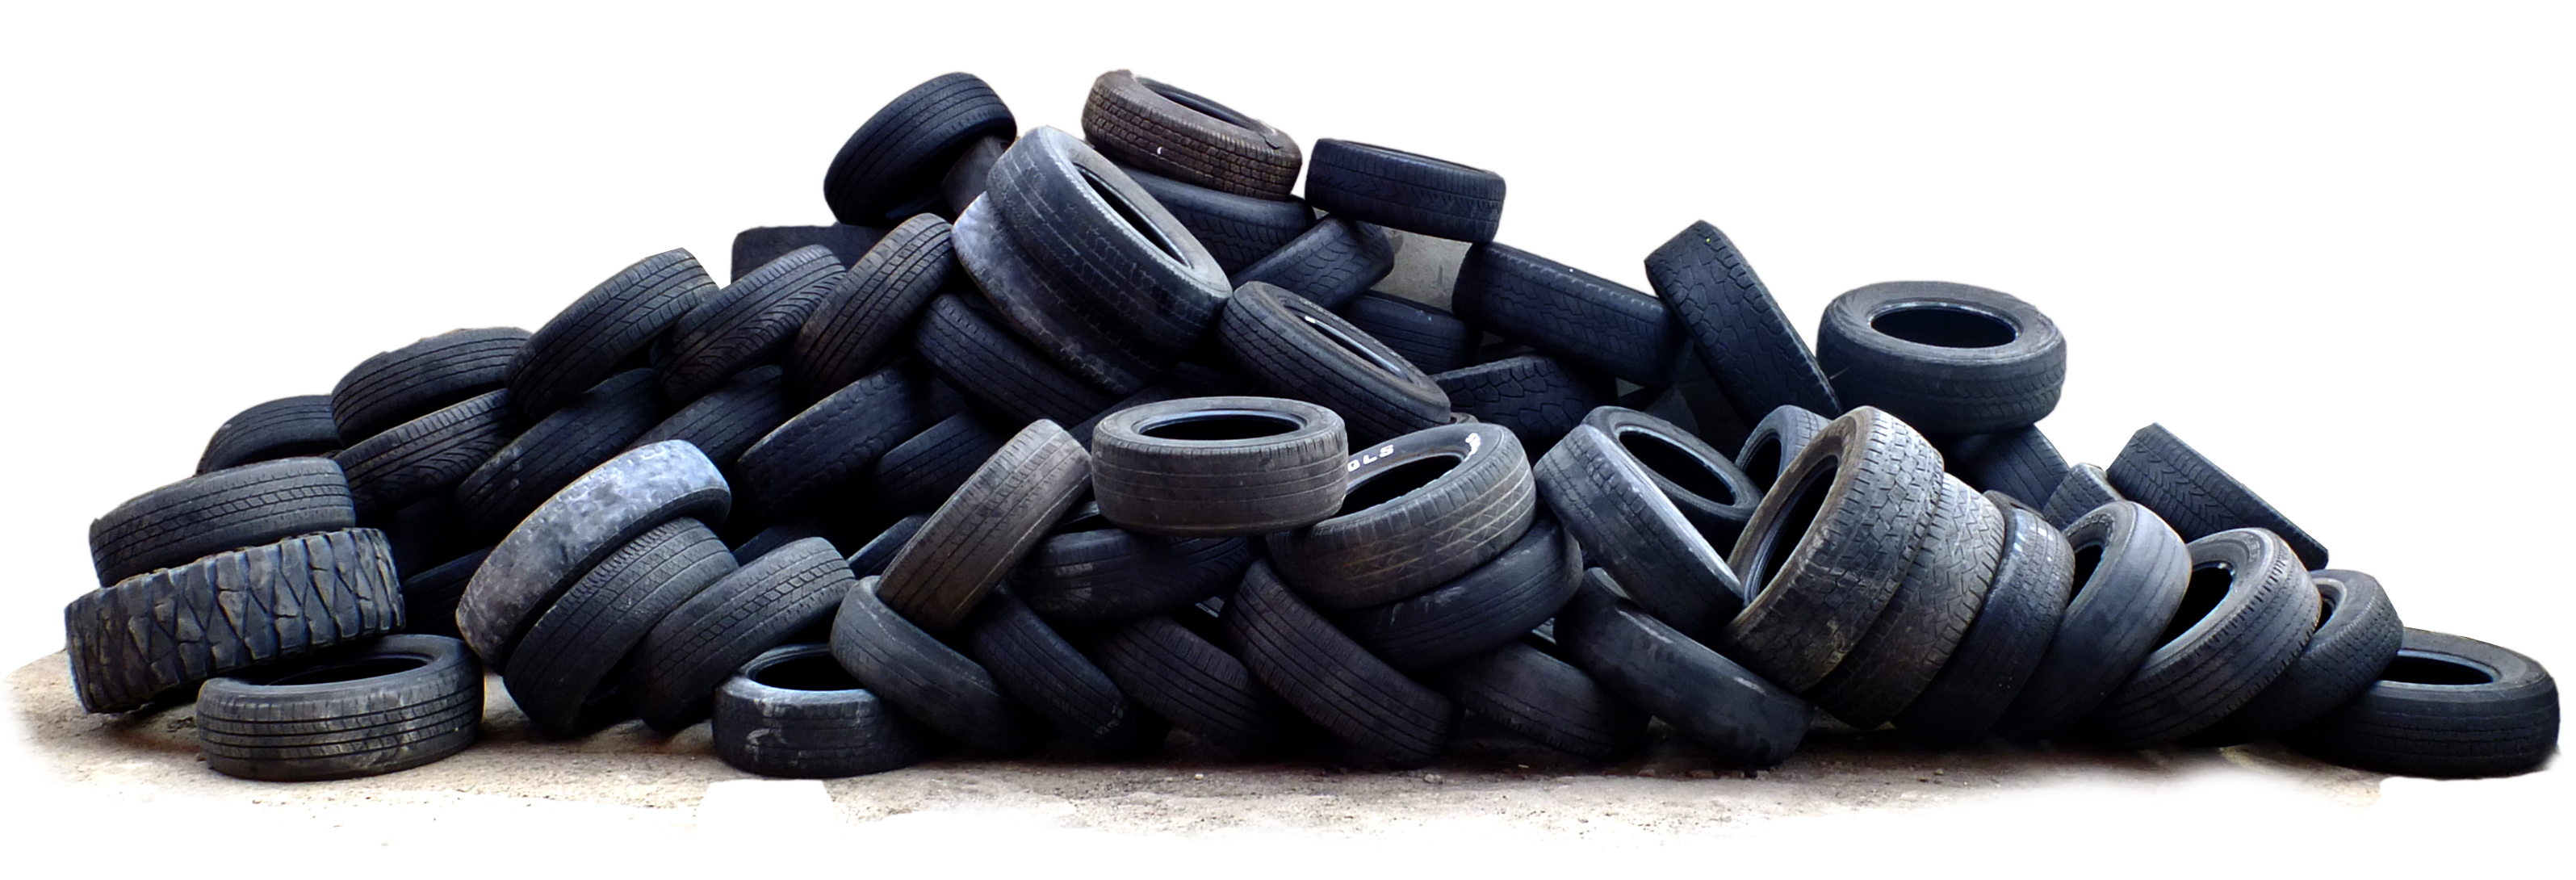 Old tire png. Recycling rubberecycle if you